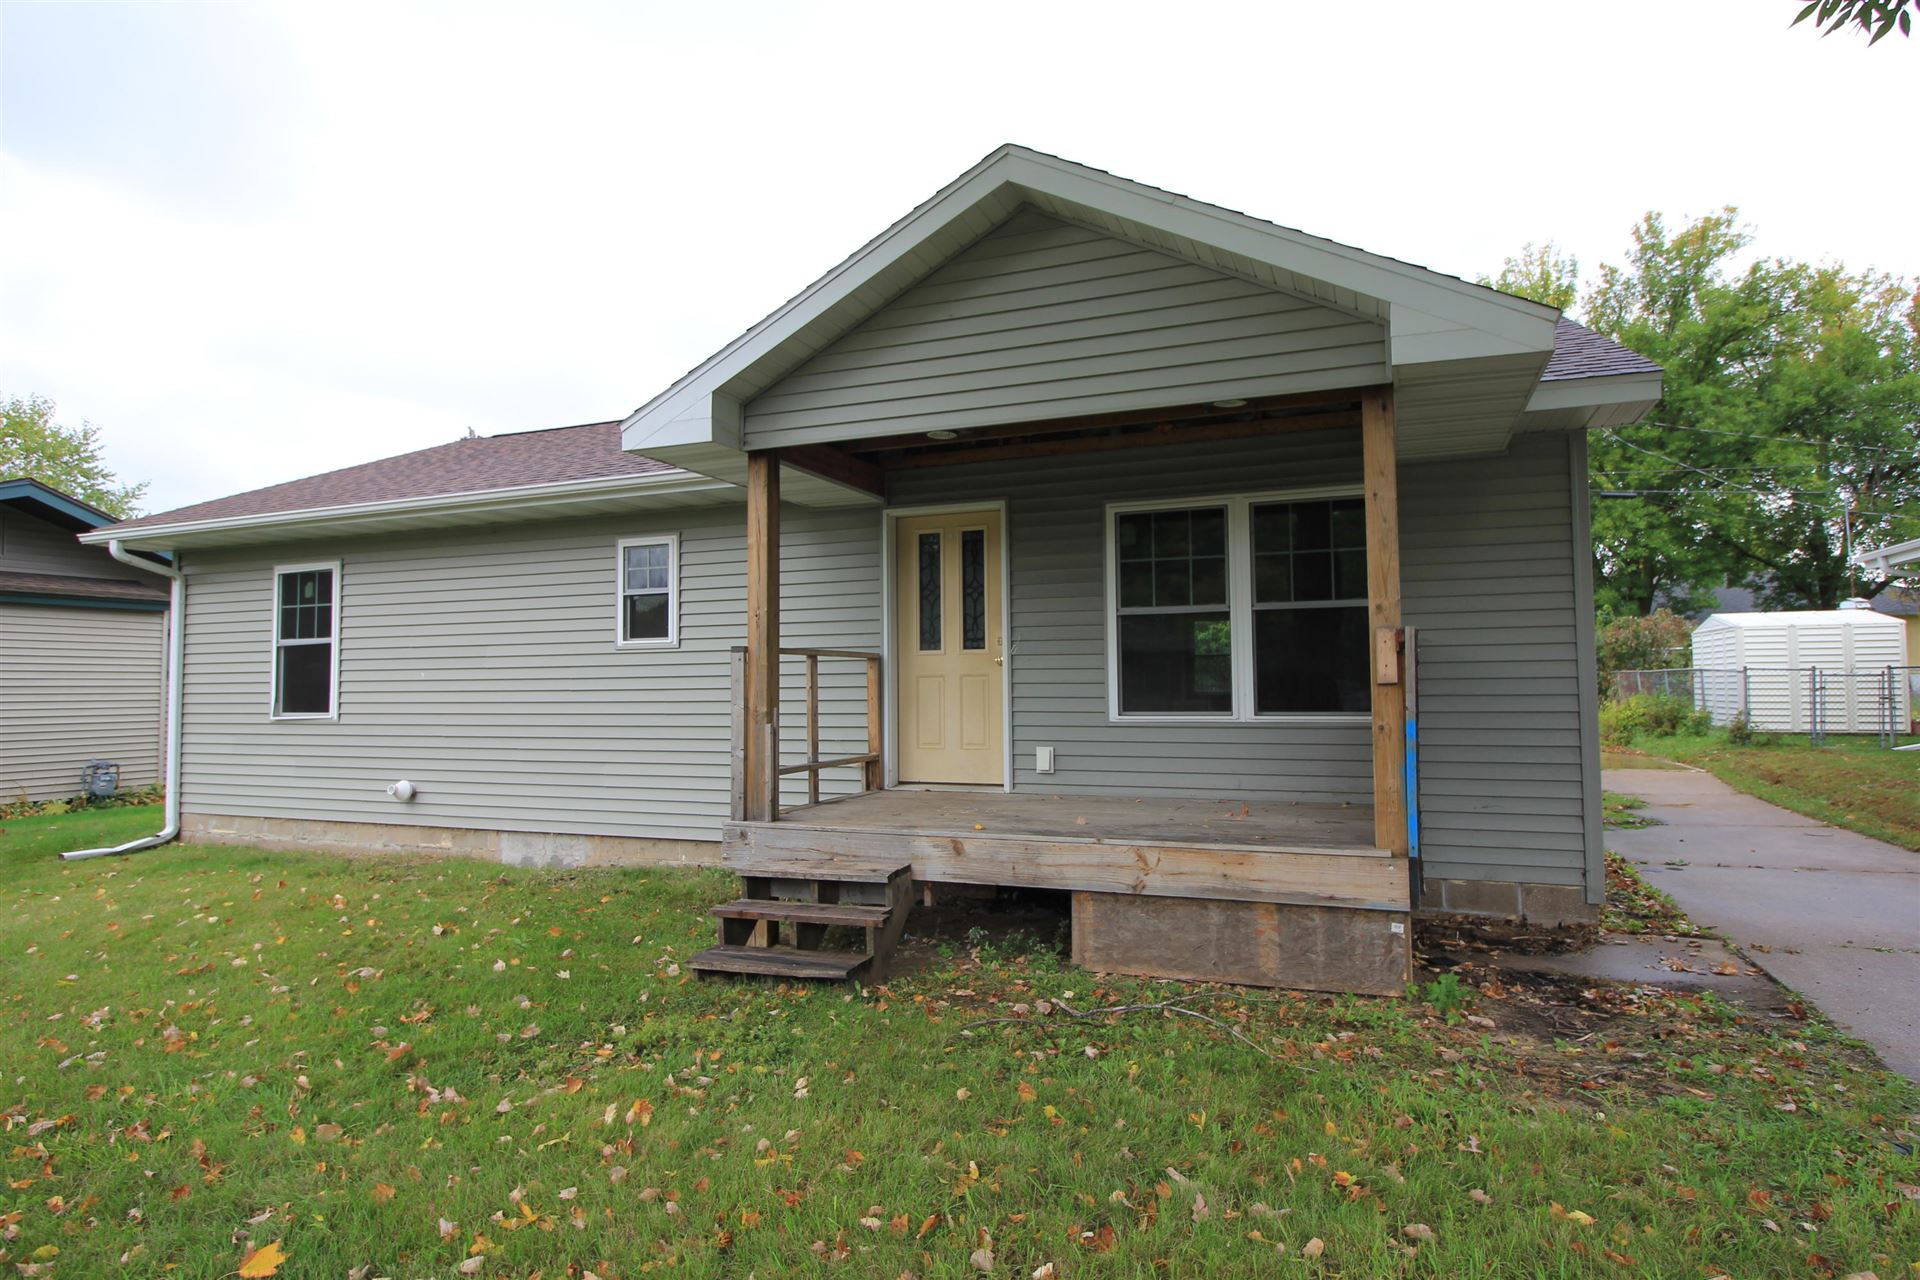 1316 27th St S, La Crosse, WI 54601 - MLS#: 1712837